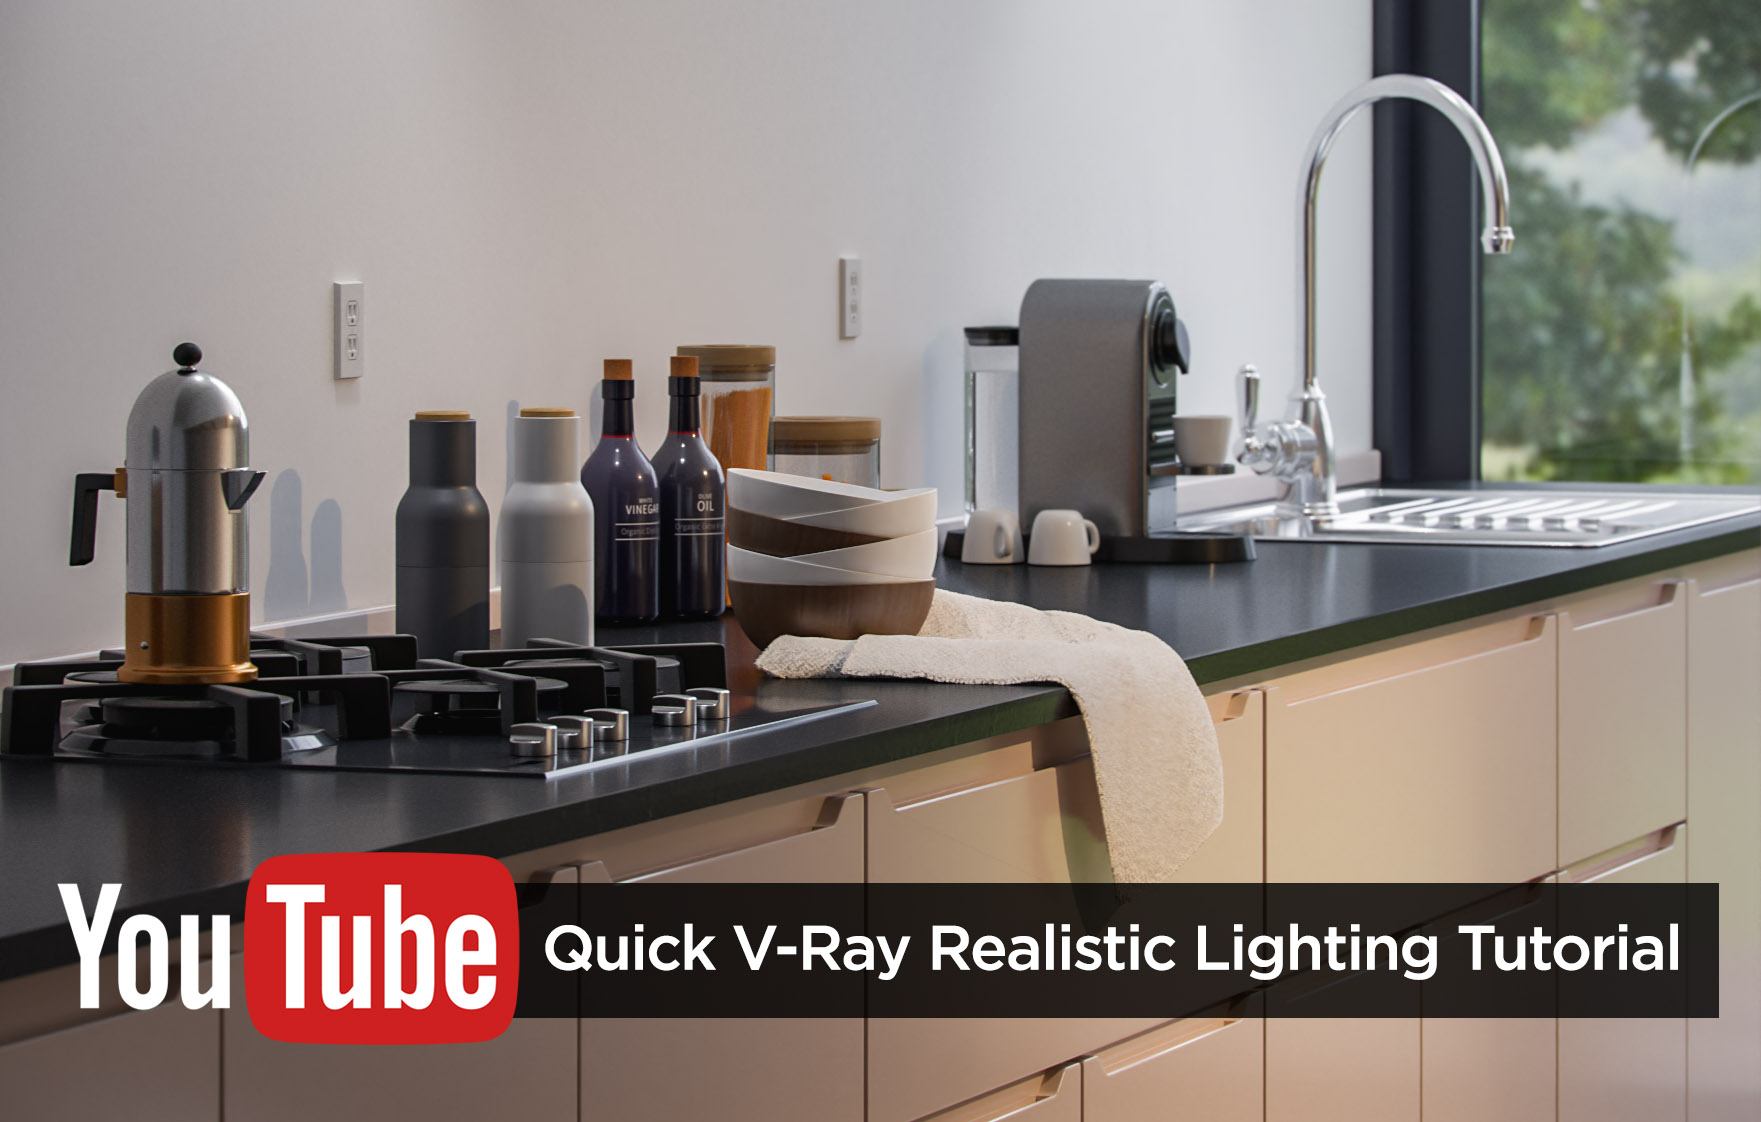 vray lighting tutorial youtube rendering interior realistic vray lighting 3dsmax feat